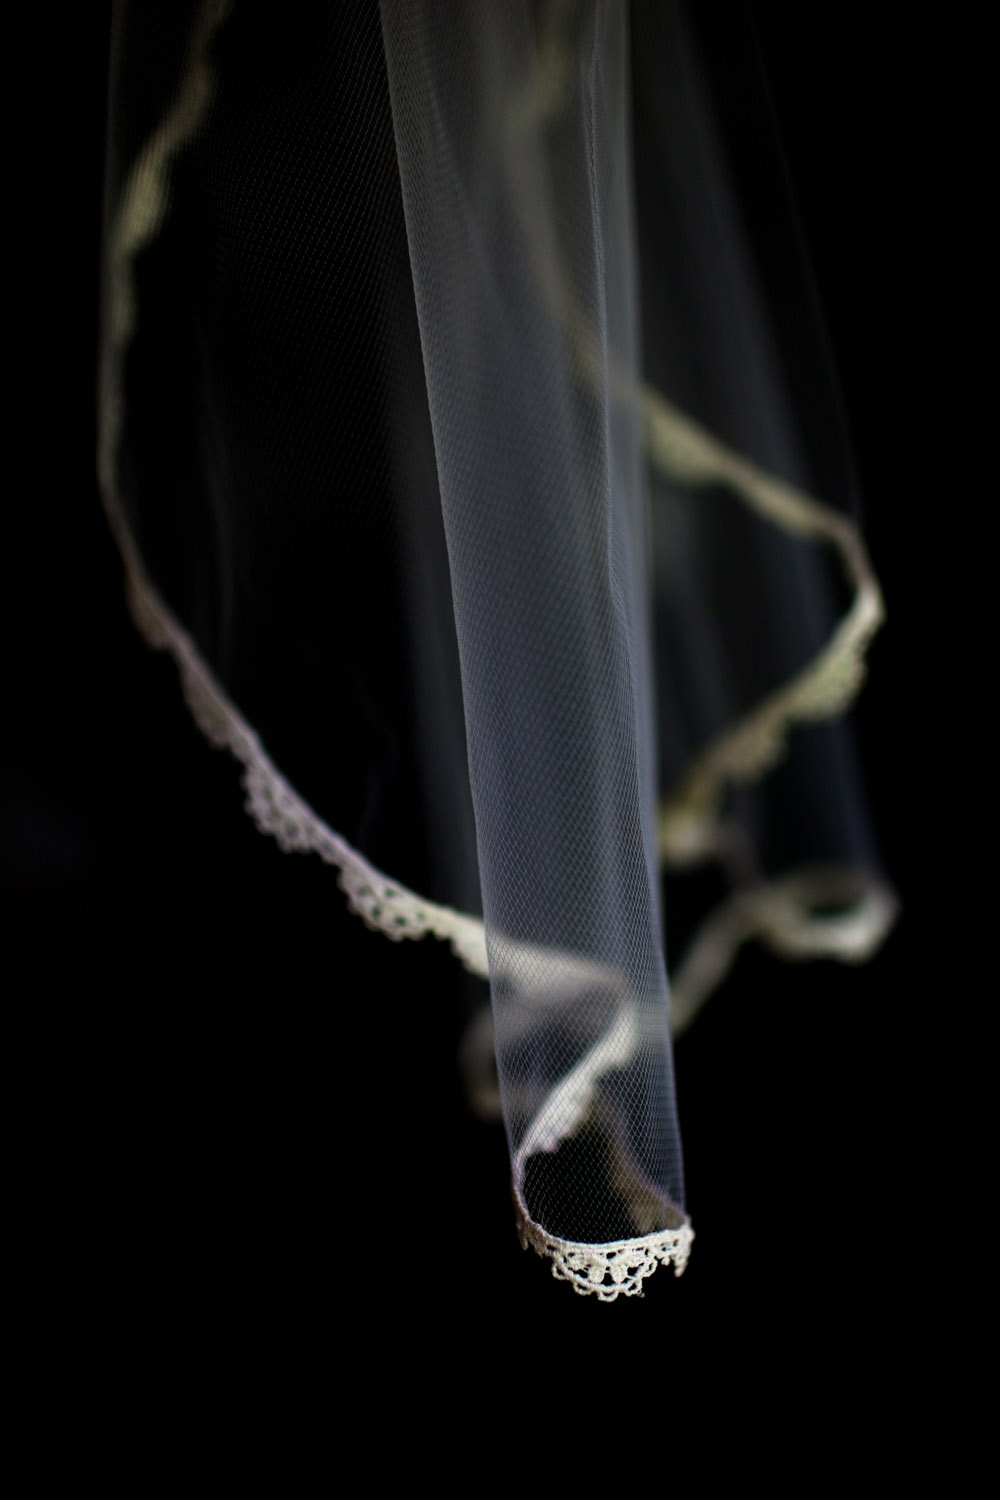 A detail photograph of a bride's wedding veil.